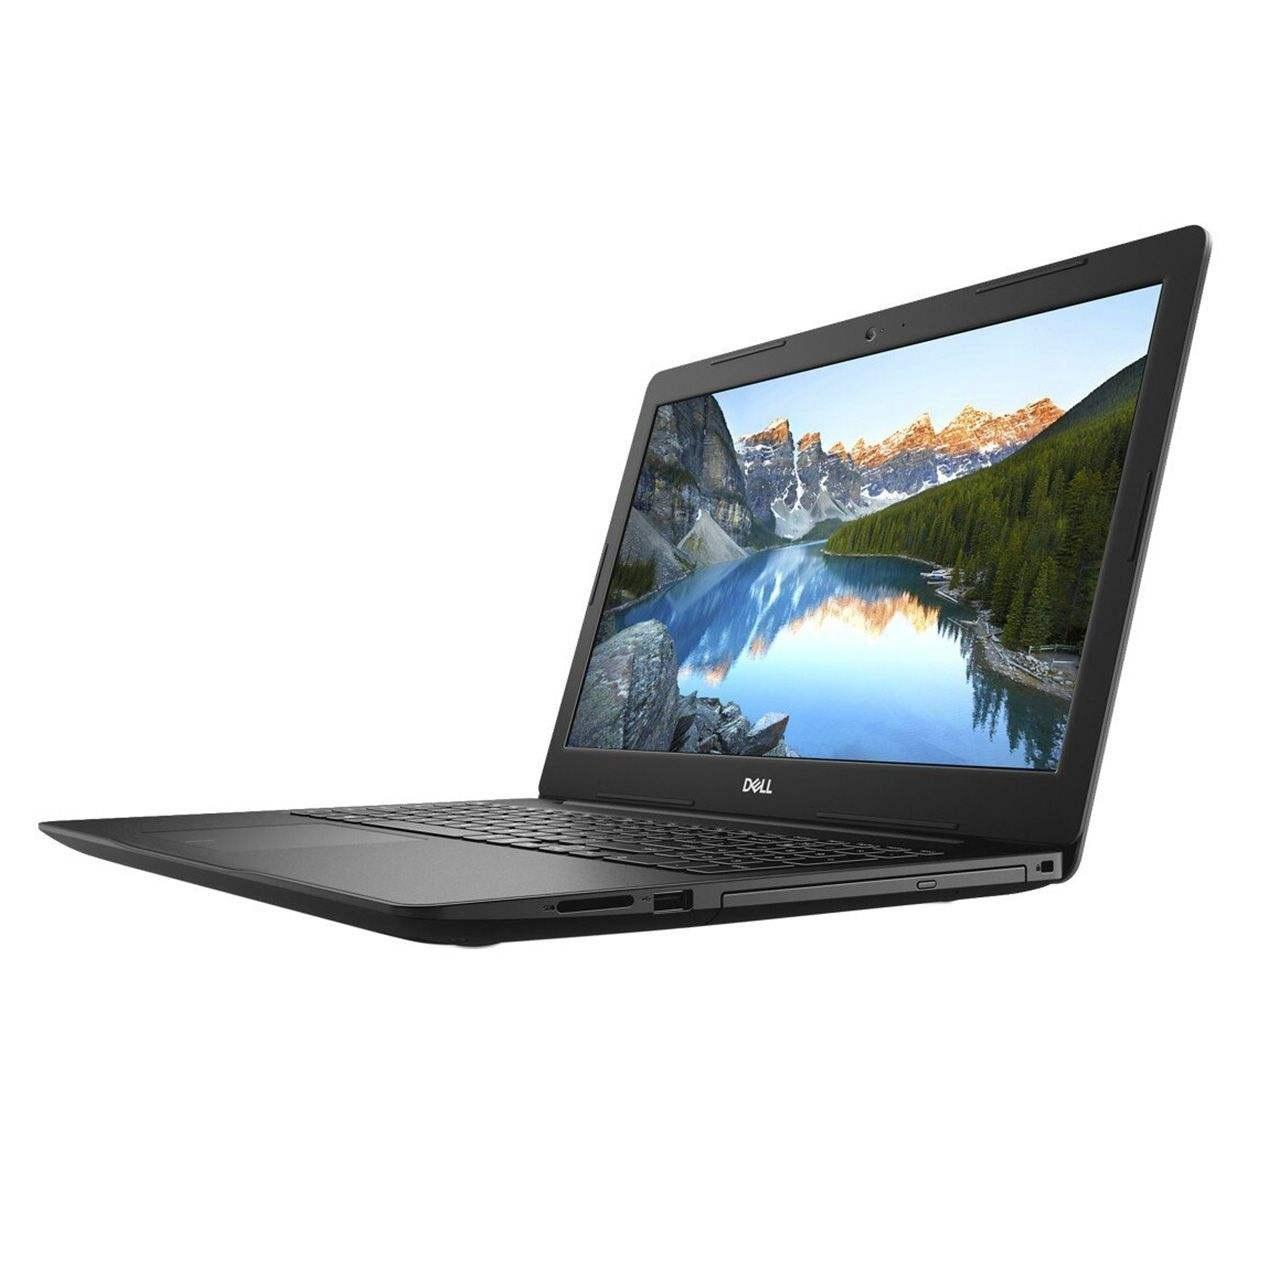 Dell inspiron 3580-X 15inch laptop